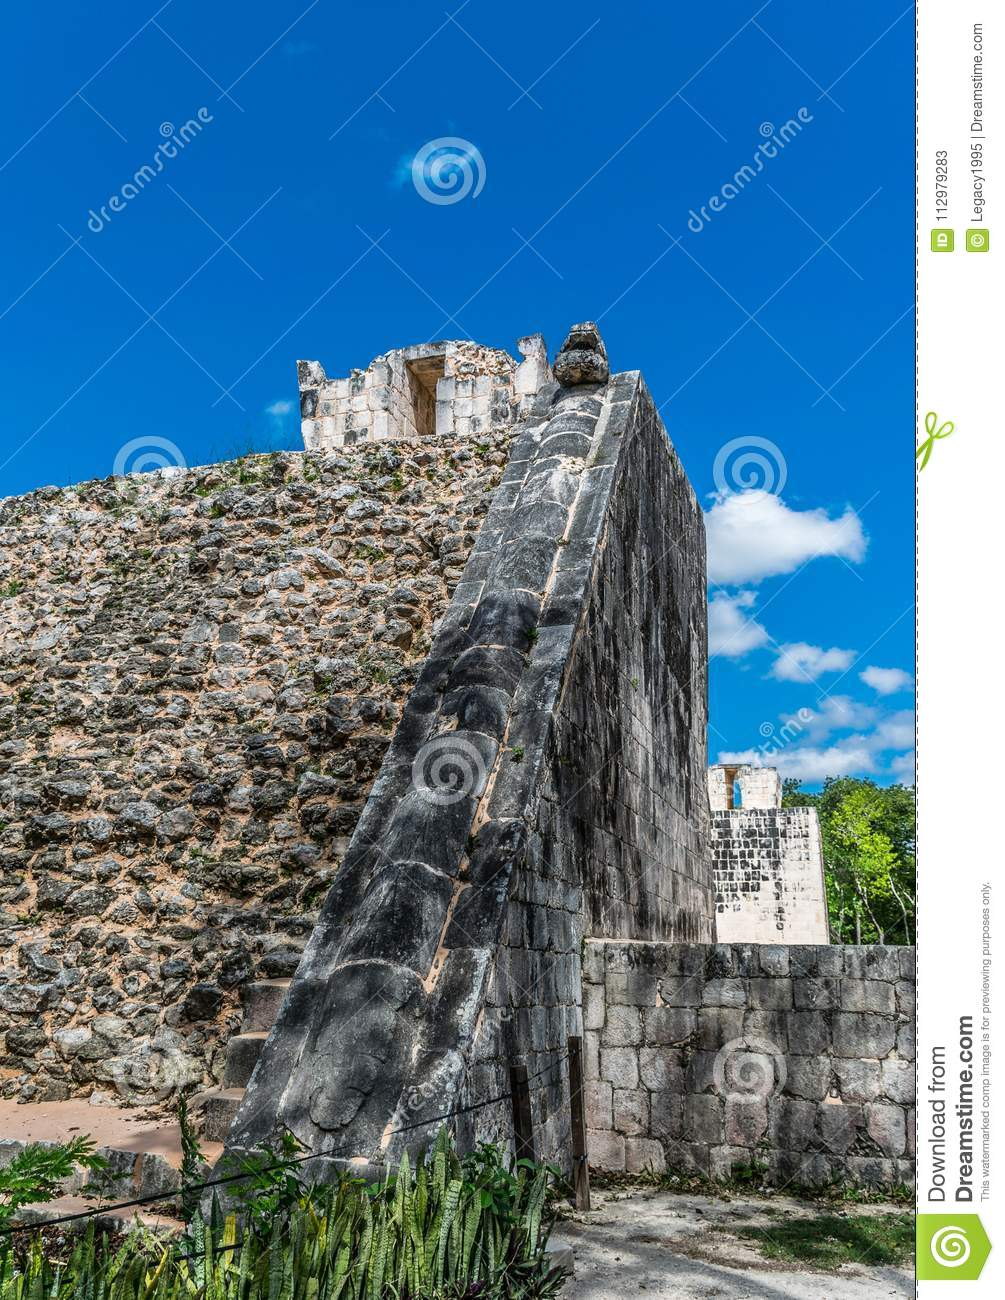 Temple of the Bearded Man in Chichen Itza, Mexico